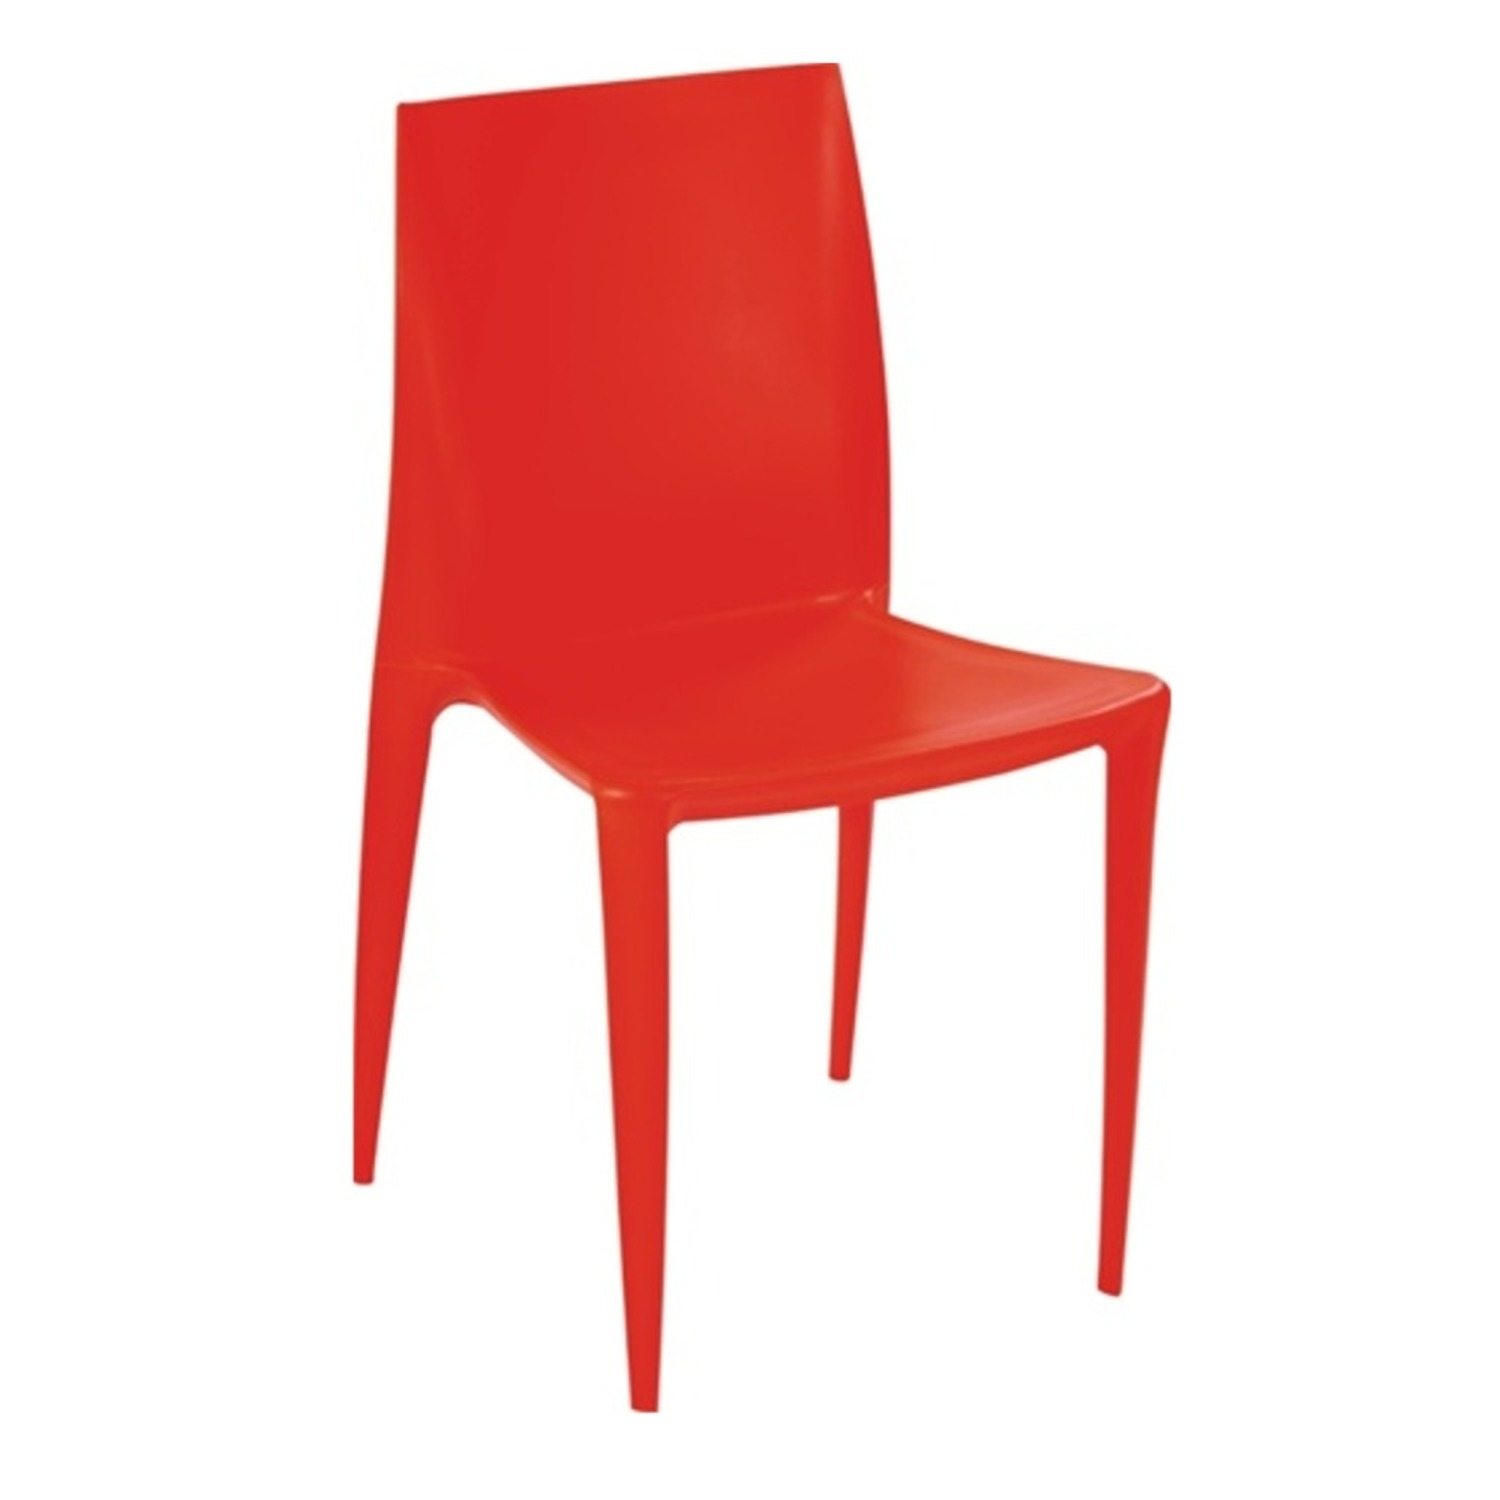 Dining Chair In Square-Shaped Orange Finish - image-0